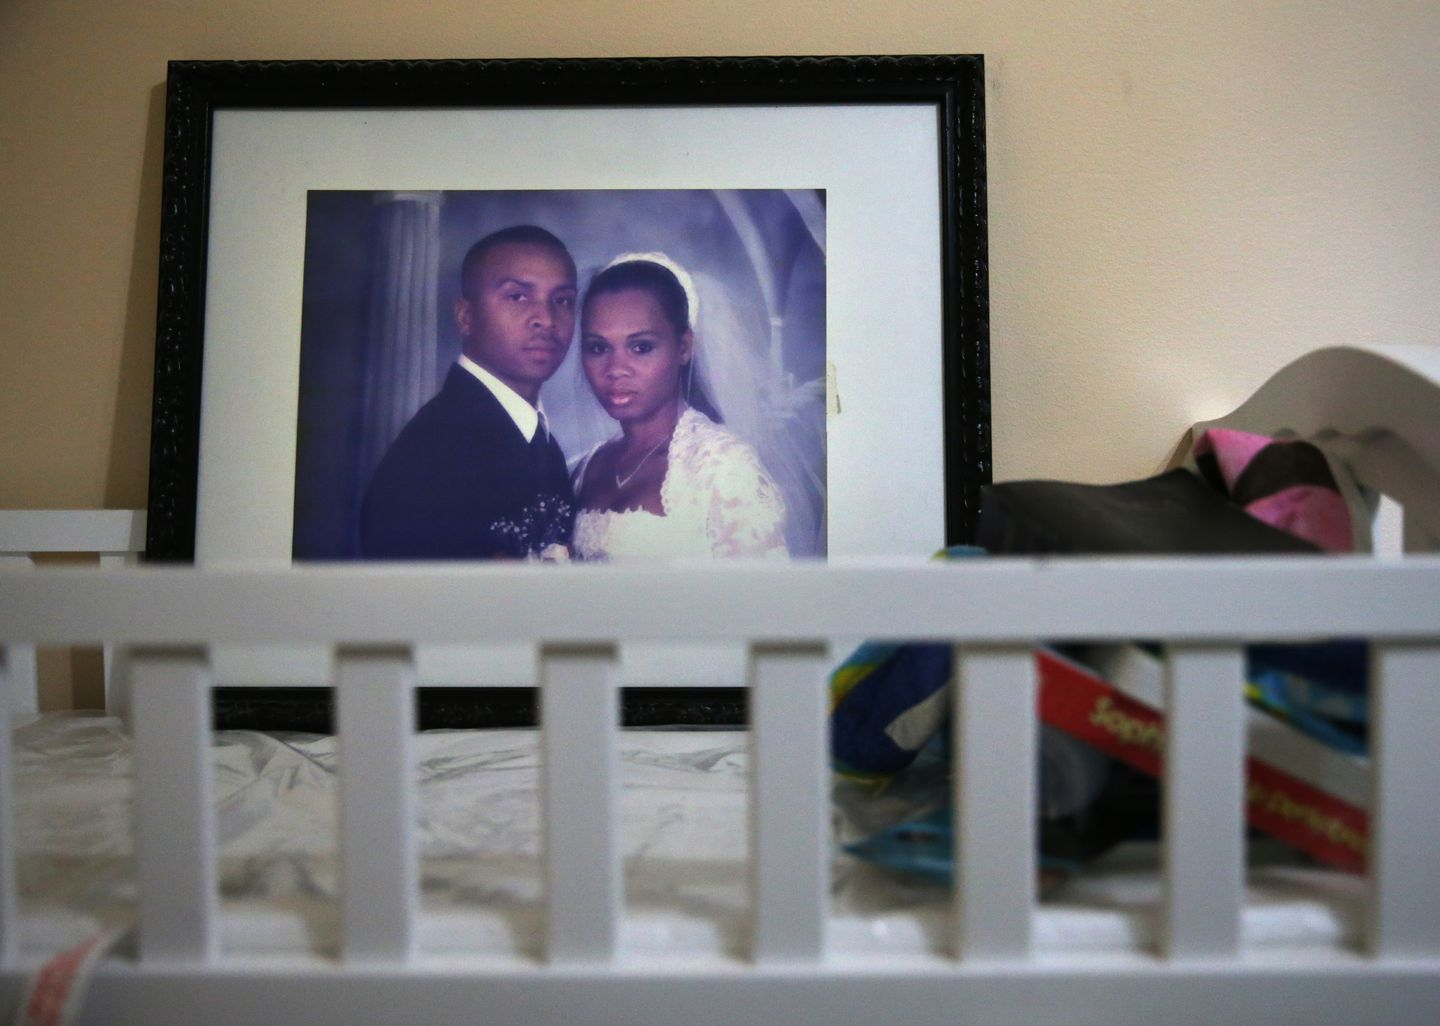 Kenny Fuchu keeps a wedding photograph of himself and his deceased wife, Seveny, on their son's changing table at his home.